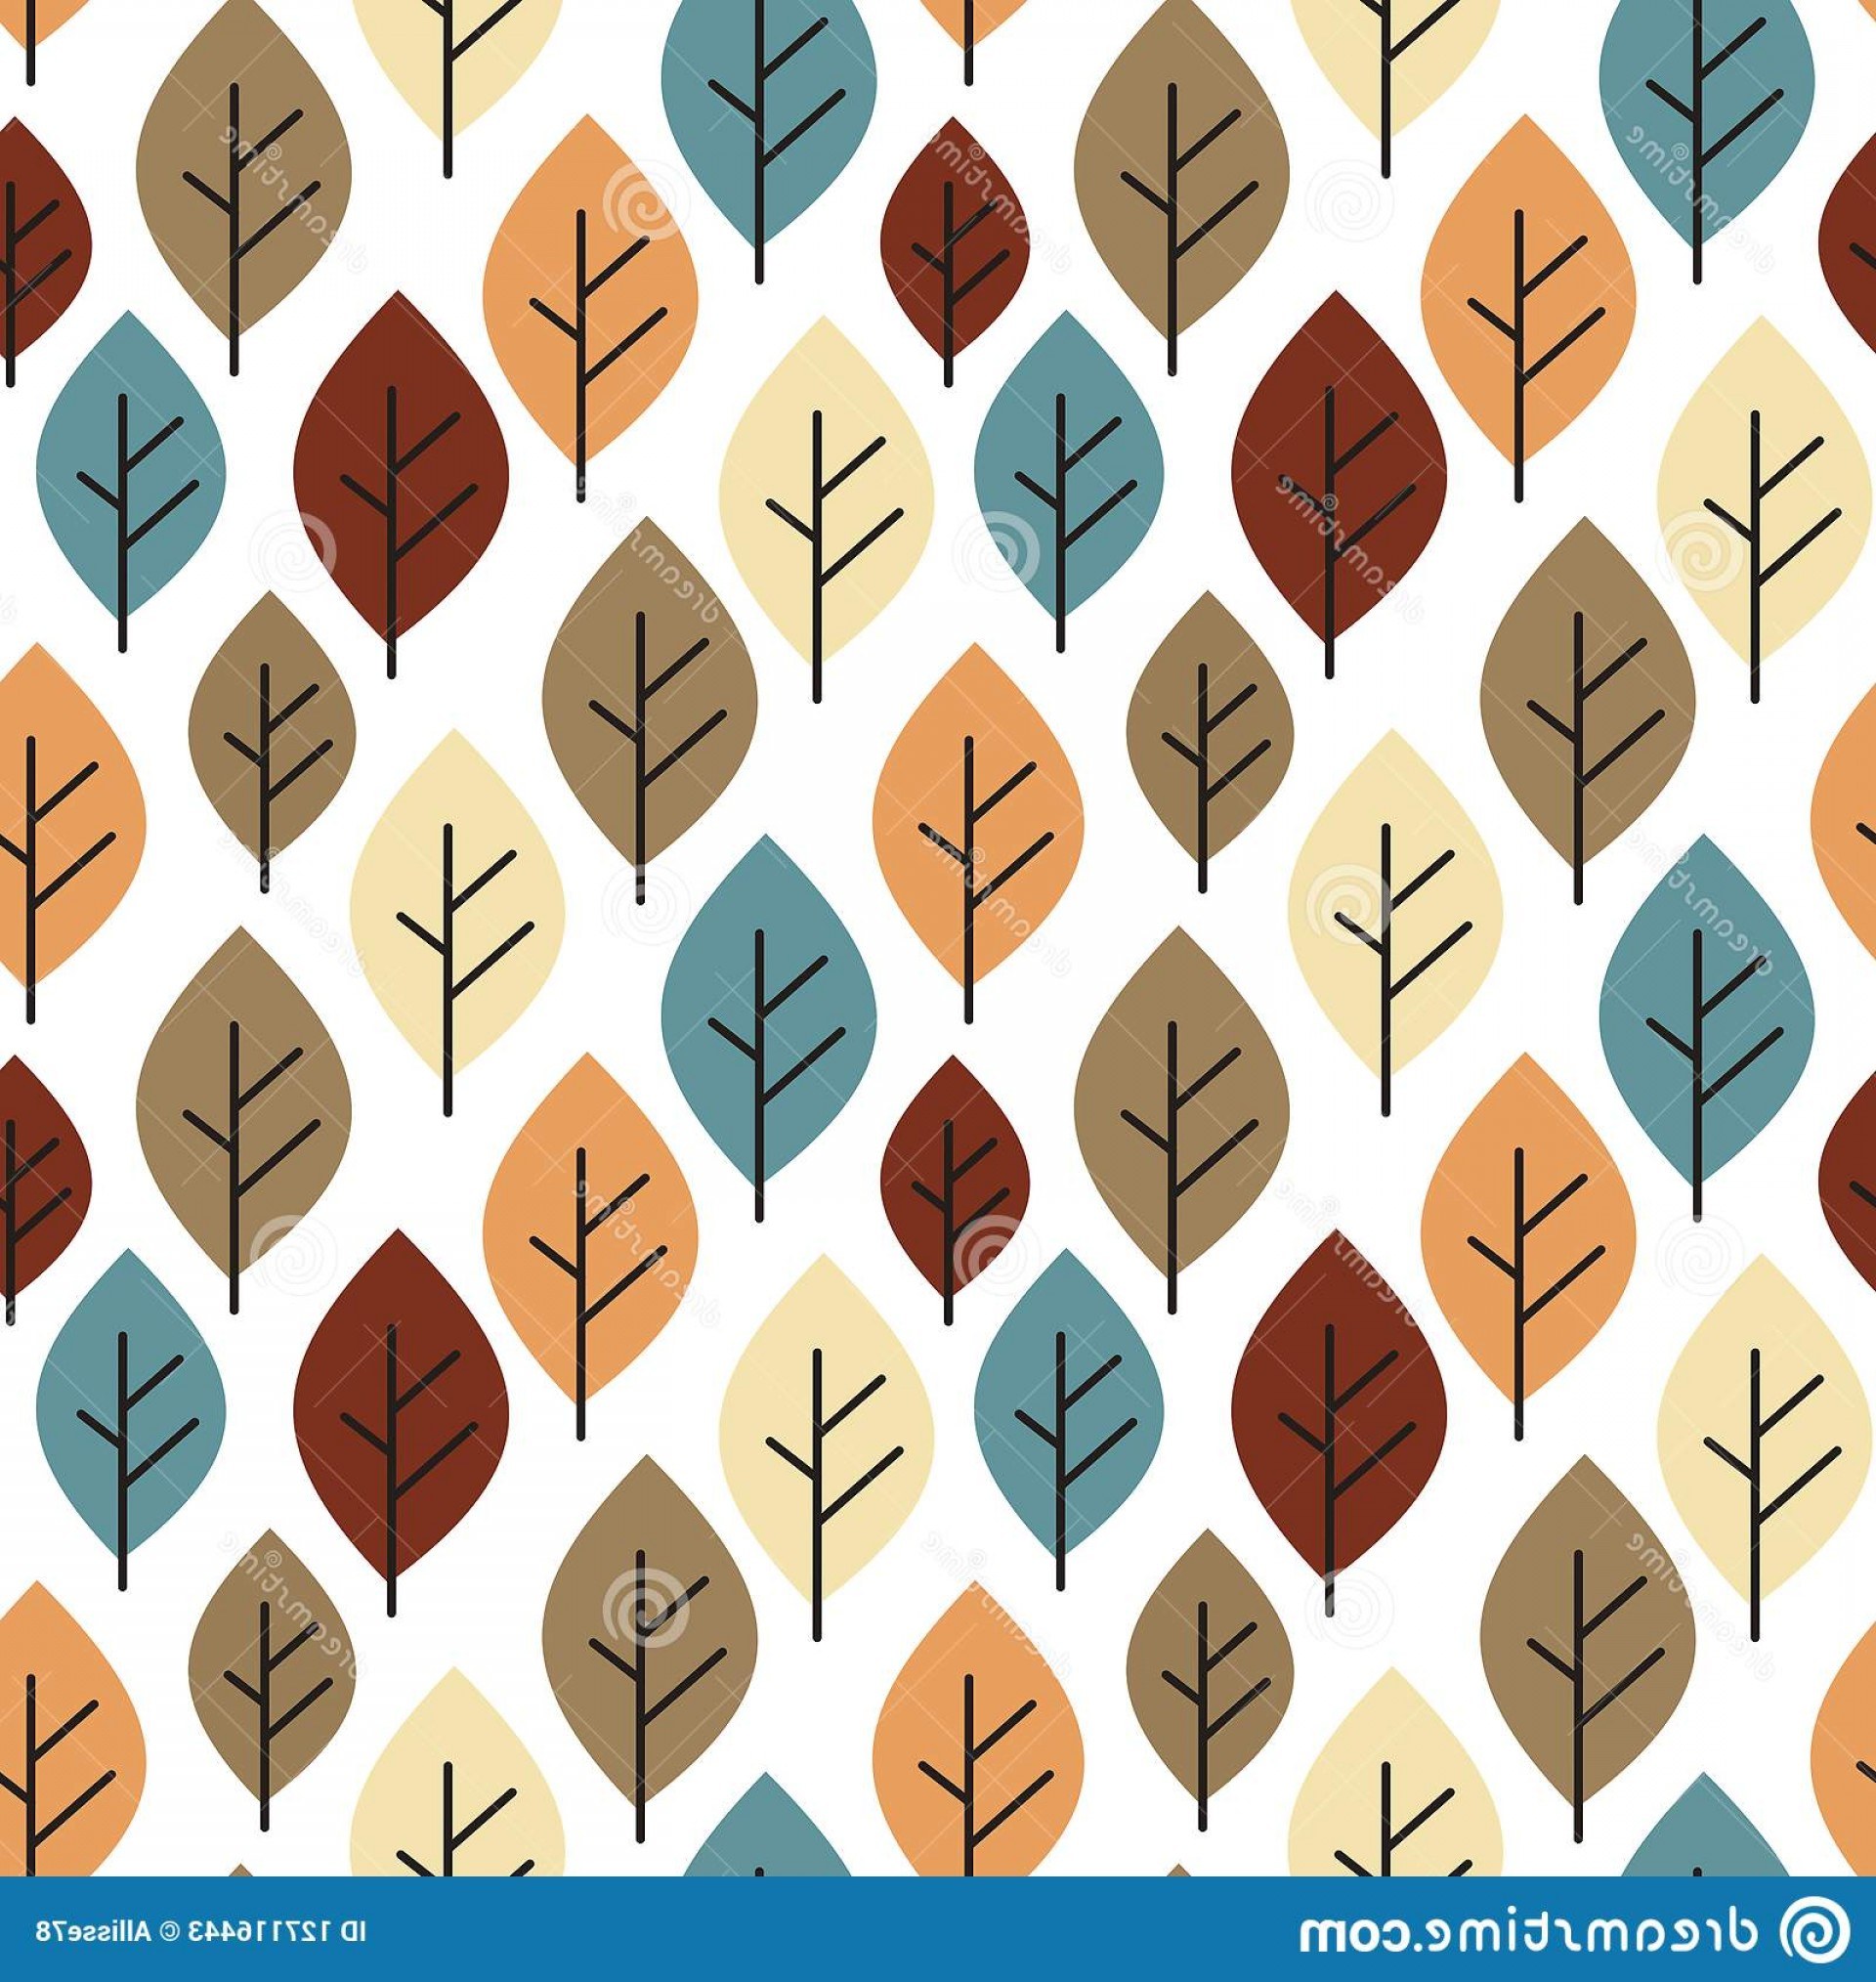 Autumn Seamless Vector: Cute Colorful Autumn Fall Seamless Pattern Background Illustration Leaves Vector Image